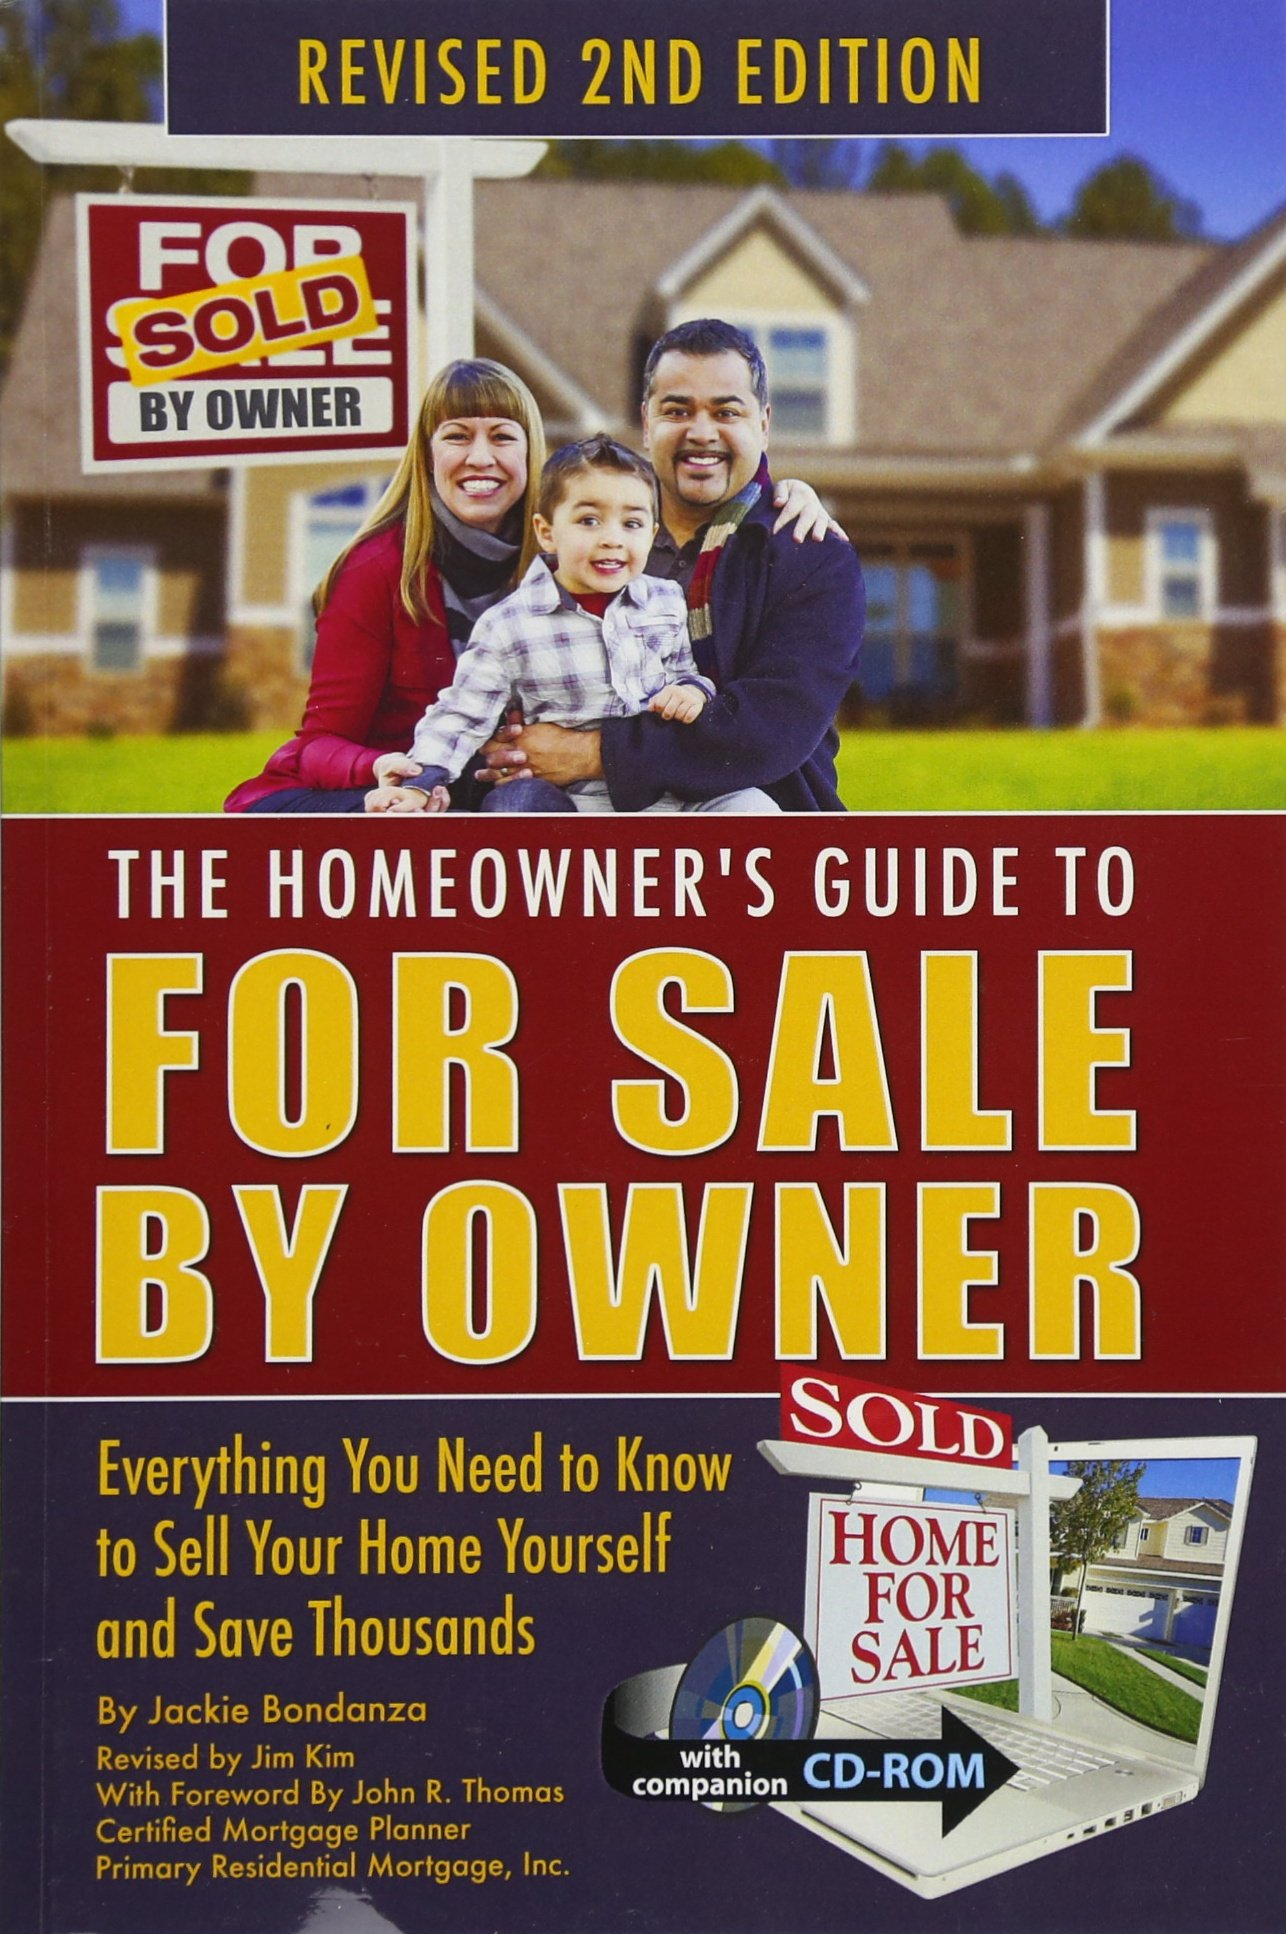 The Homeowner's Guide to for Sale by Owner: Everything You Need to Know to Sell Your Home Yourself and Save Thousands 2nd Edition